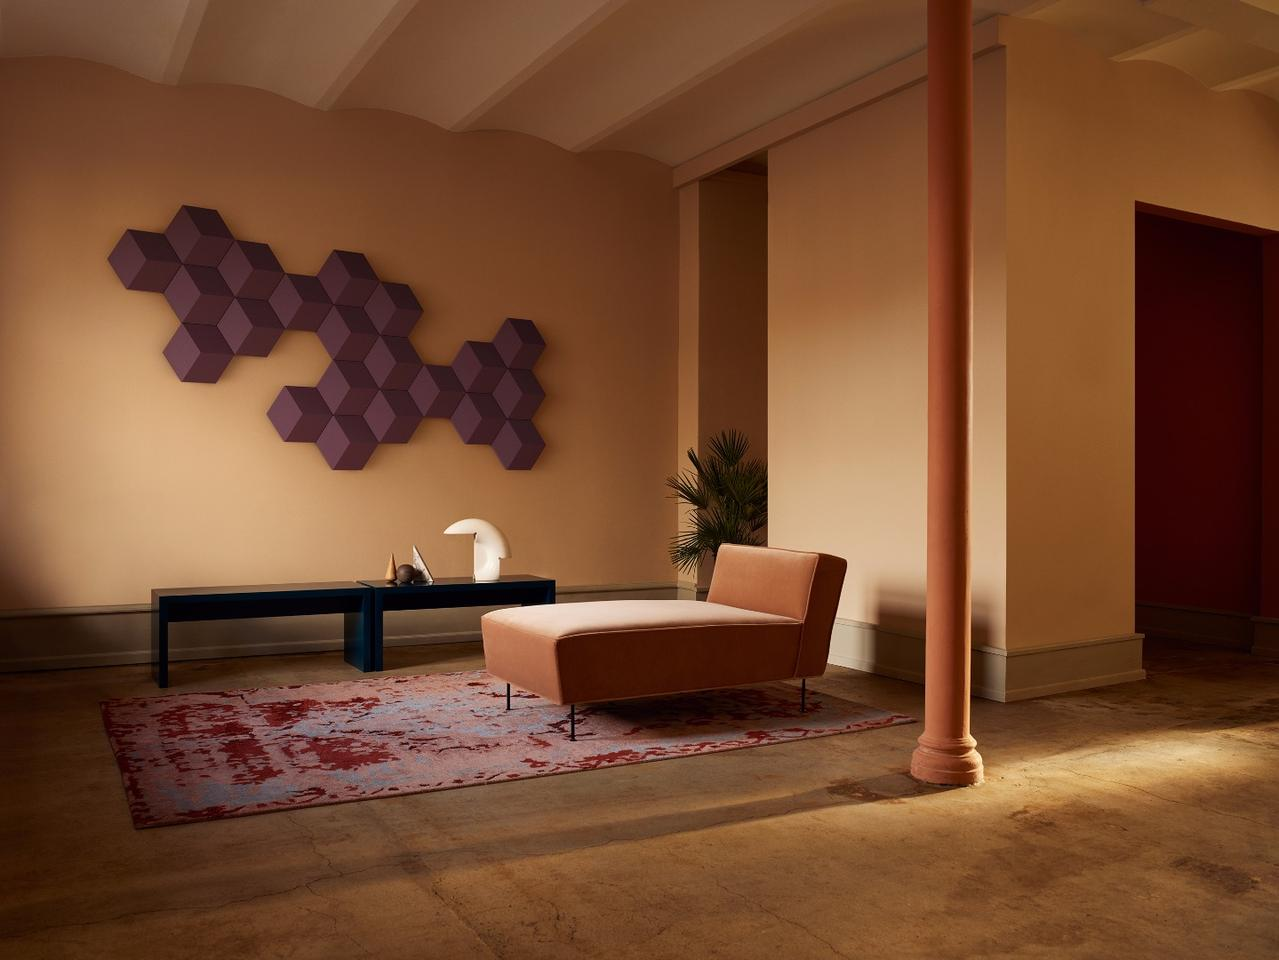 The BeoSound Shape takes a novel approach to audio